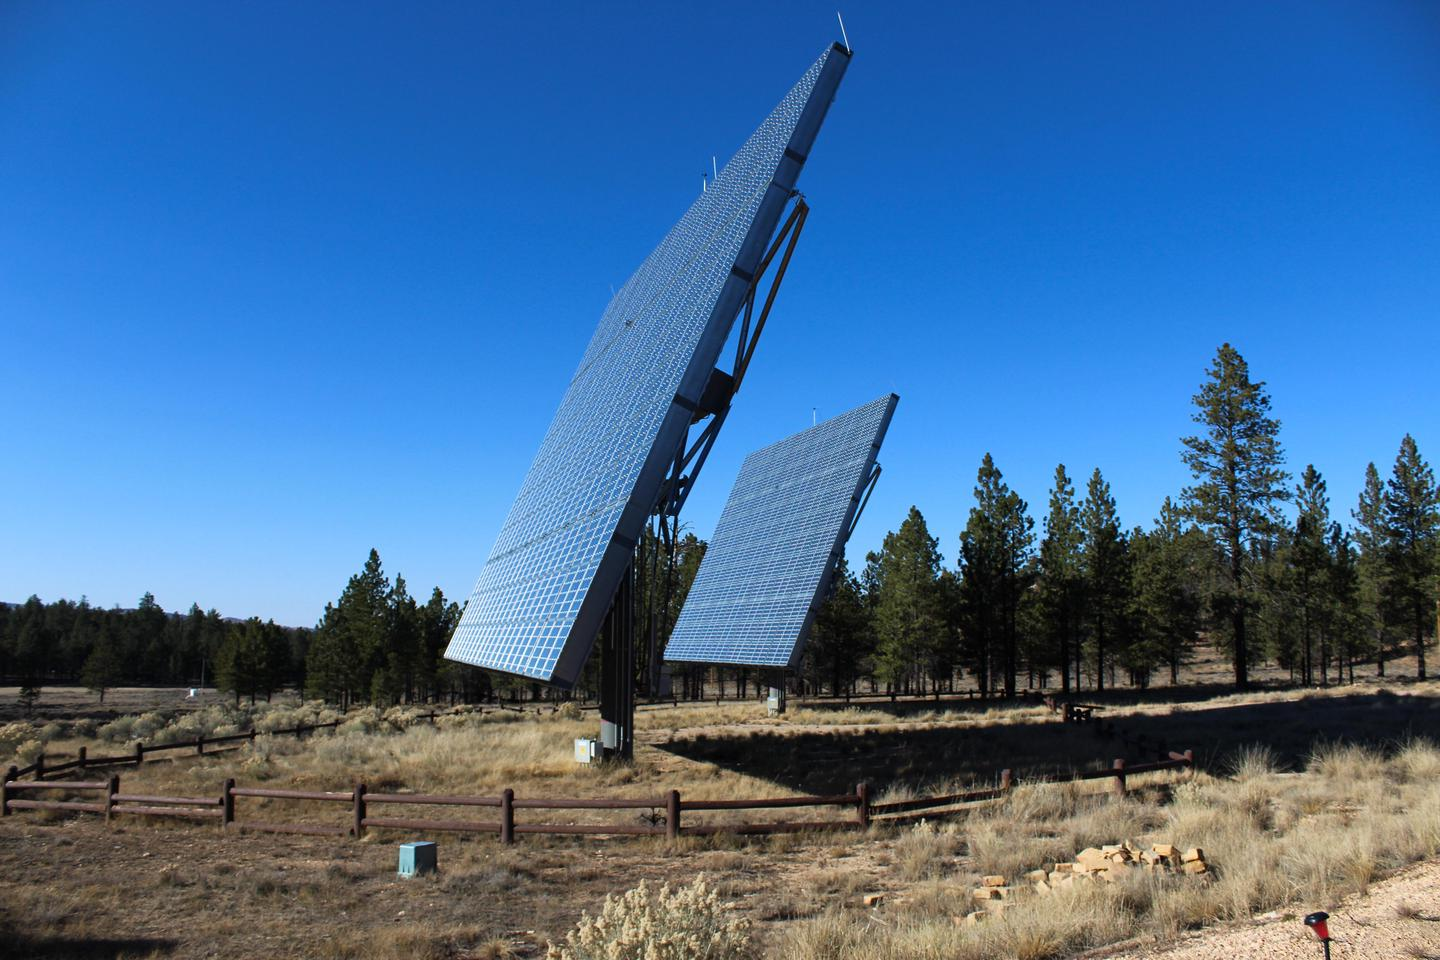 Visitor Center Solar Photovoltaic ArraysThe park's Concentrating Solar Photovoltaic (CPV) array generates around 400,000 kilowatt hours a year. The two 70' x 50' tracking generators are located along the Shared Use Path near the Visitor Center.